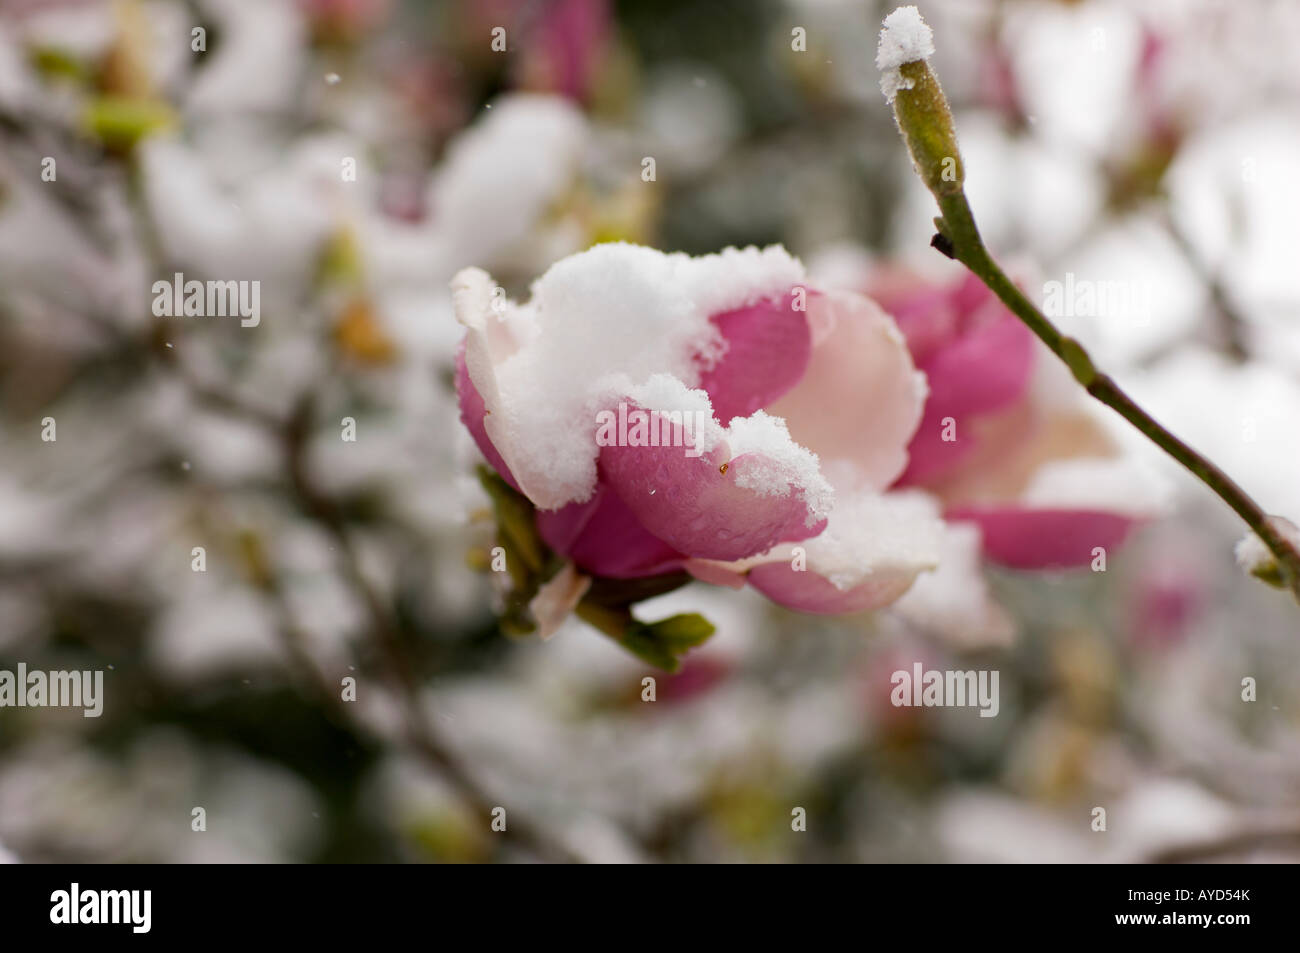 Pink magnolia flowers covered in early spring snow stock photo pink magnolia flowers covered in early spring snow mightylinksfo